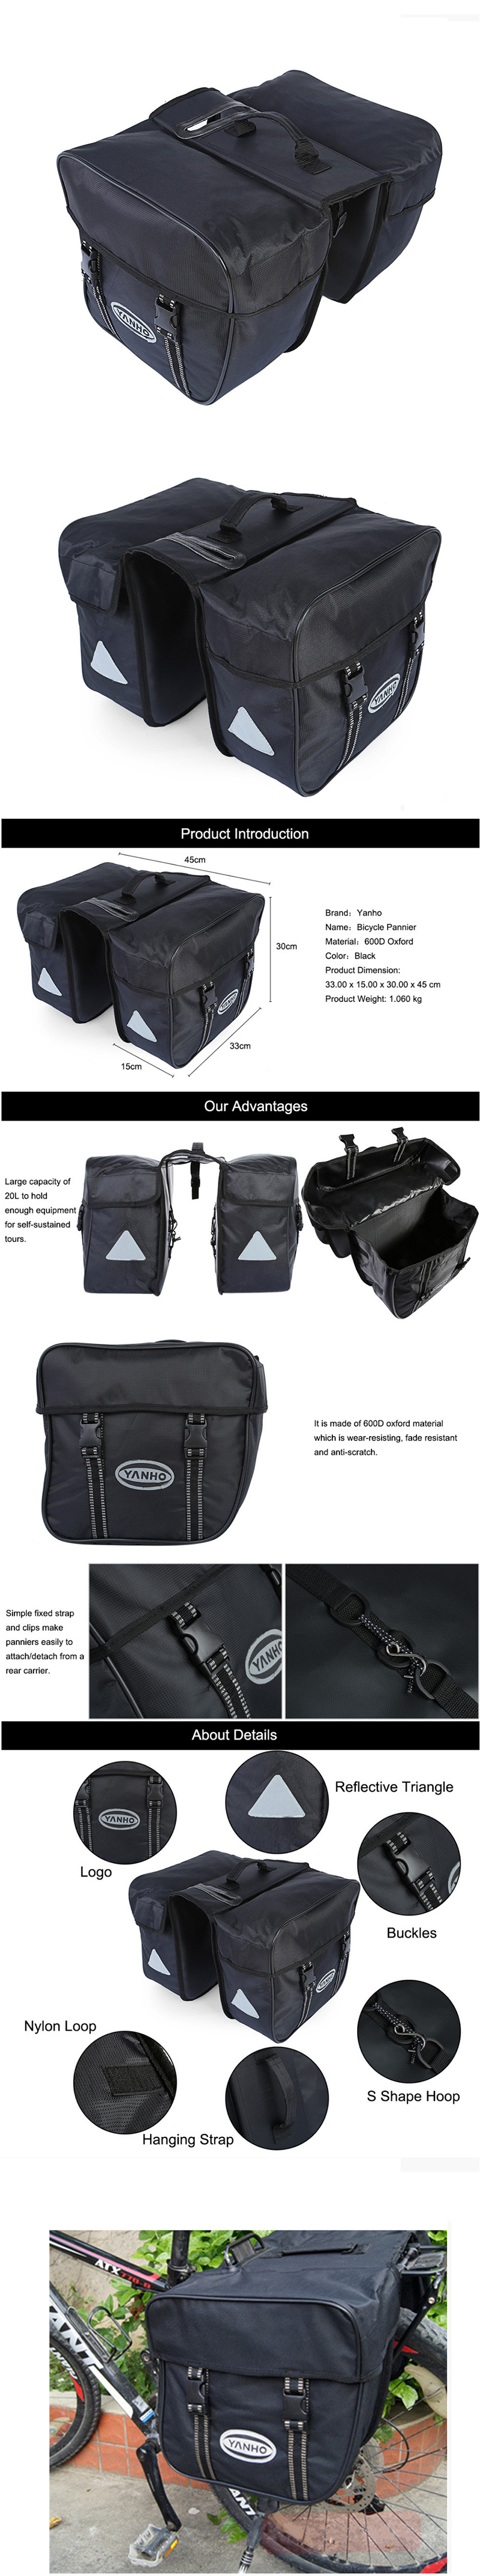 YANHO Mountain Road Bike Back Seat Bag 600D Oxford Cloth 3 in1 Bicycle Cycling Accessory Bag